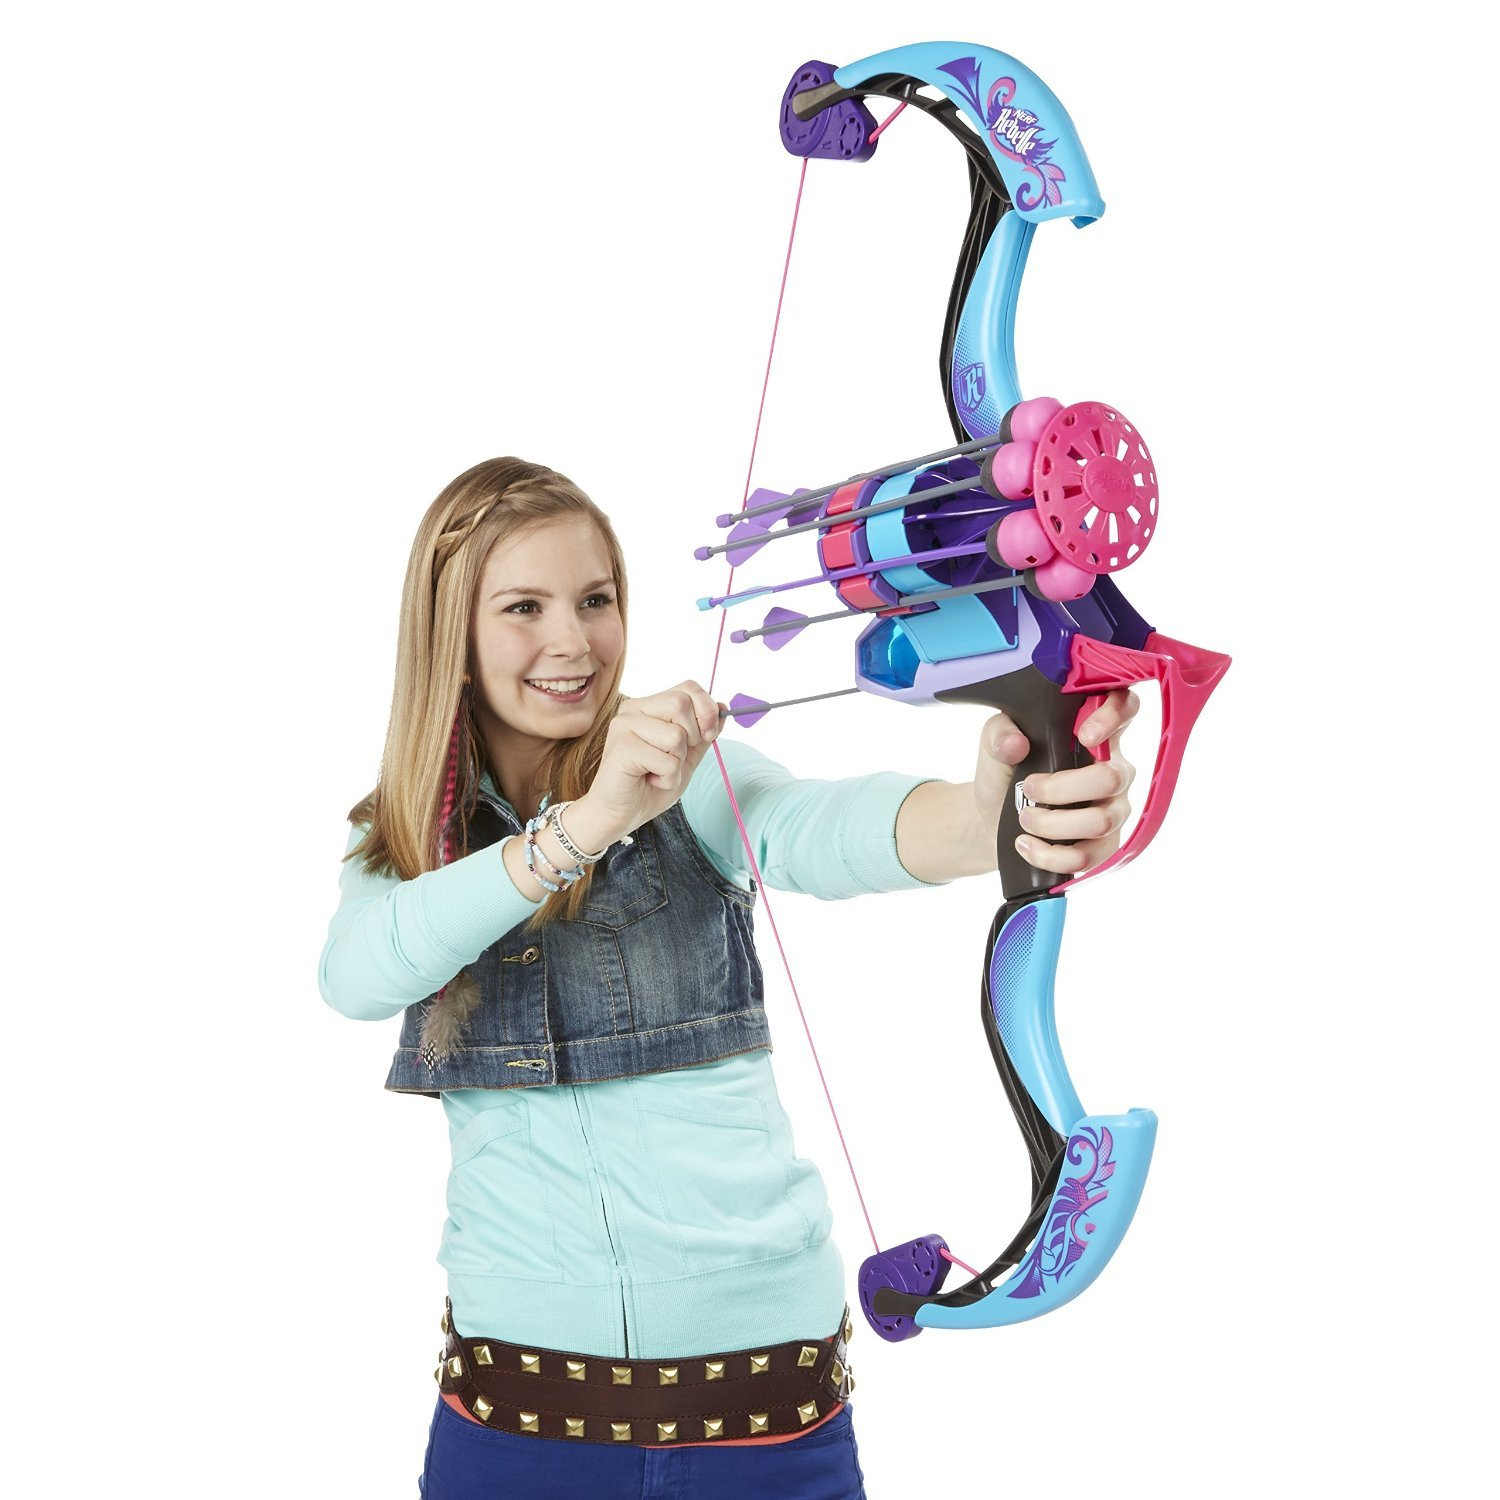 Amazon Nerf Rebelle Secrets and Spies Arrow Revolution Bow Blaster Toy Toys & Games